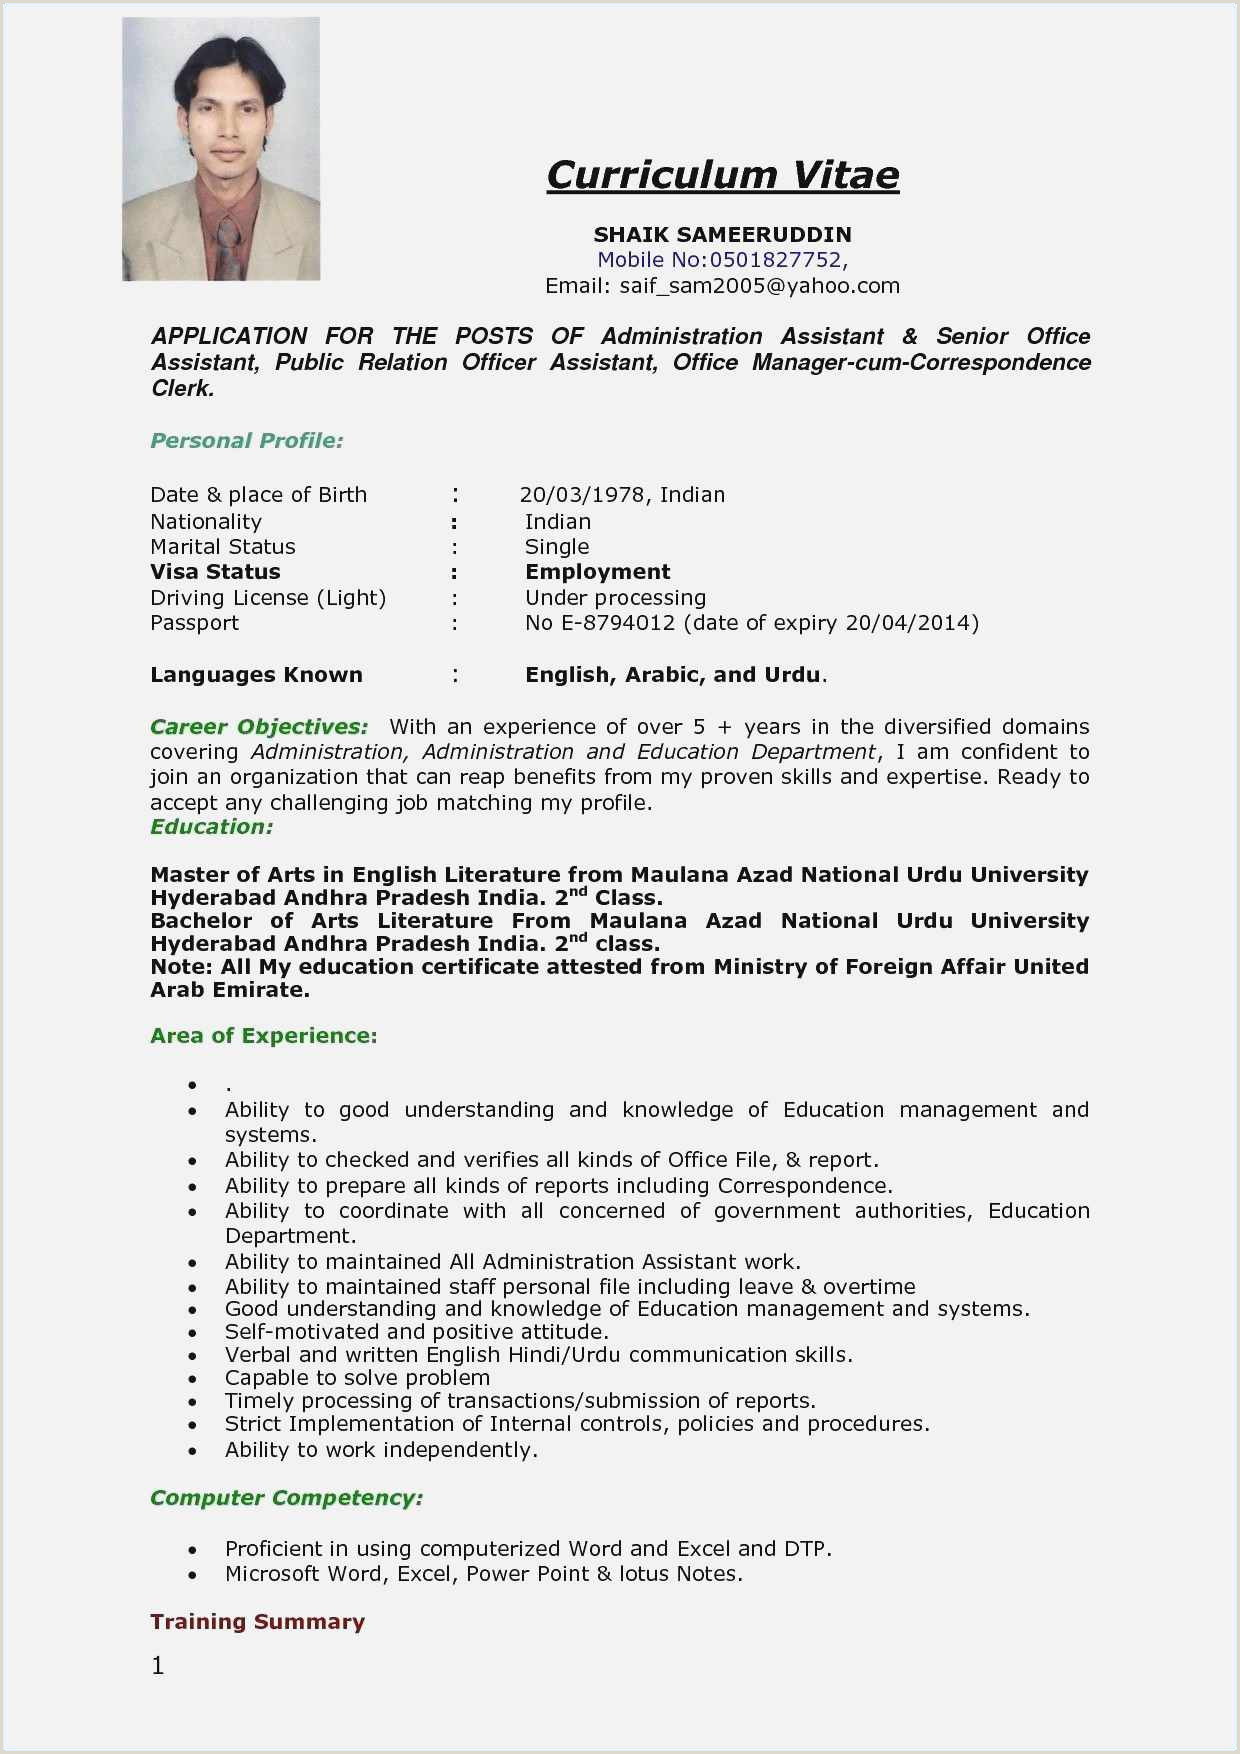 Resume Format For Job Diploma Free Curriculum Vitae Examples Construction Beautiful